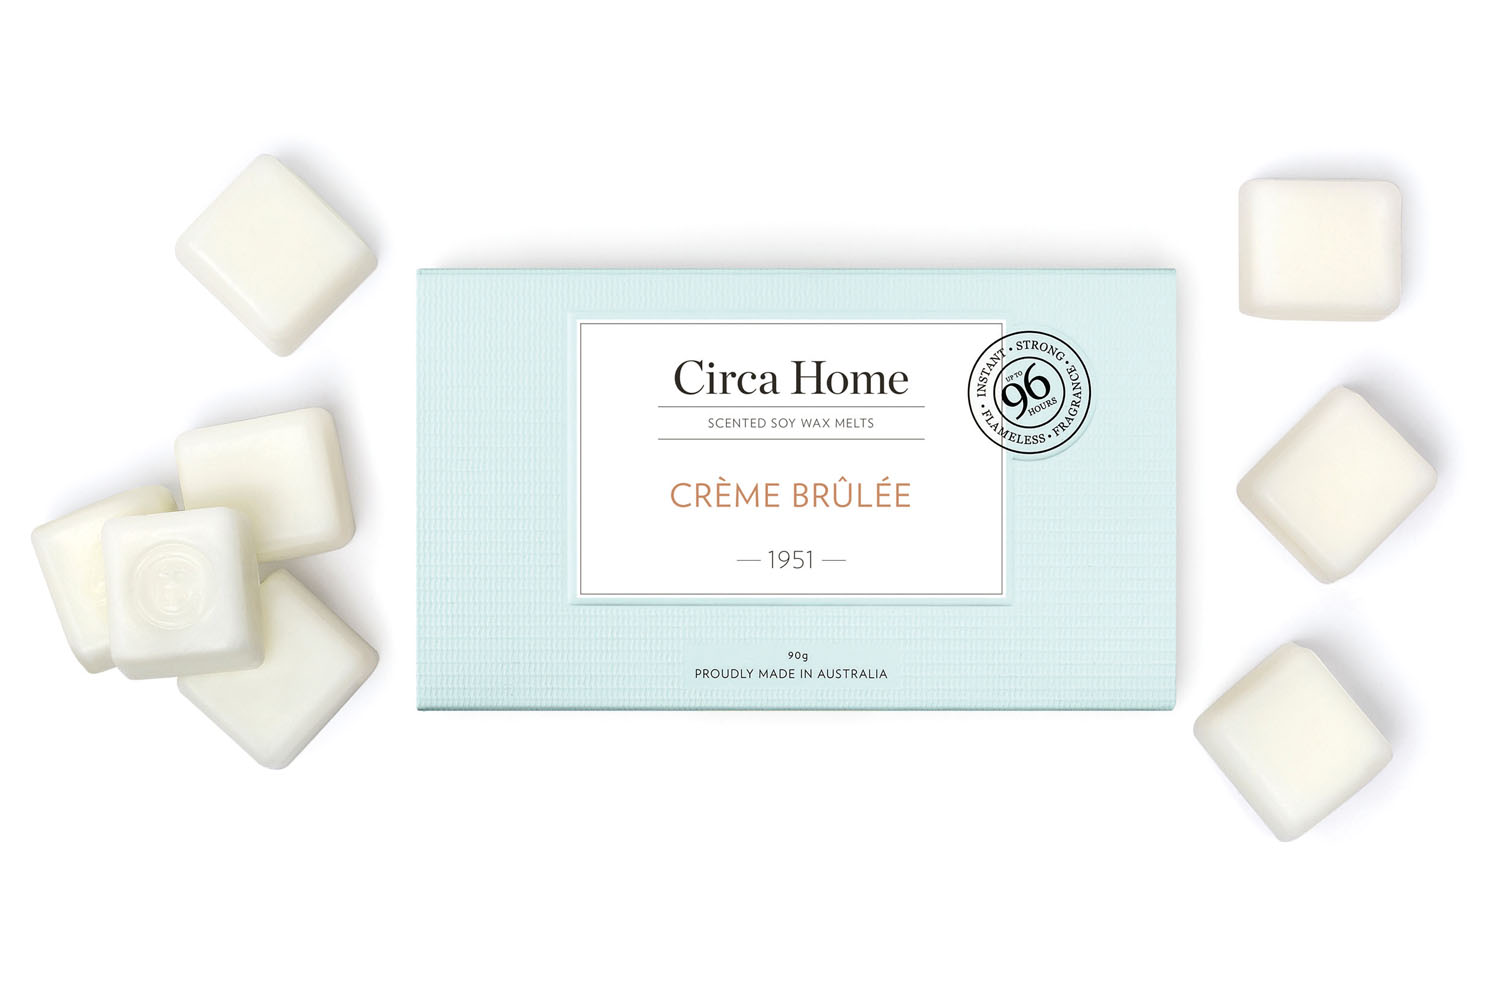 Circa Home Scented Melts Creme Brulee_$9.95